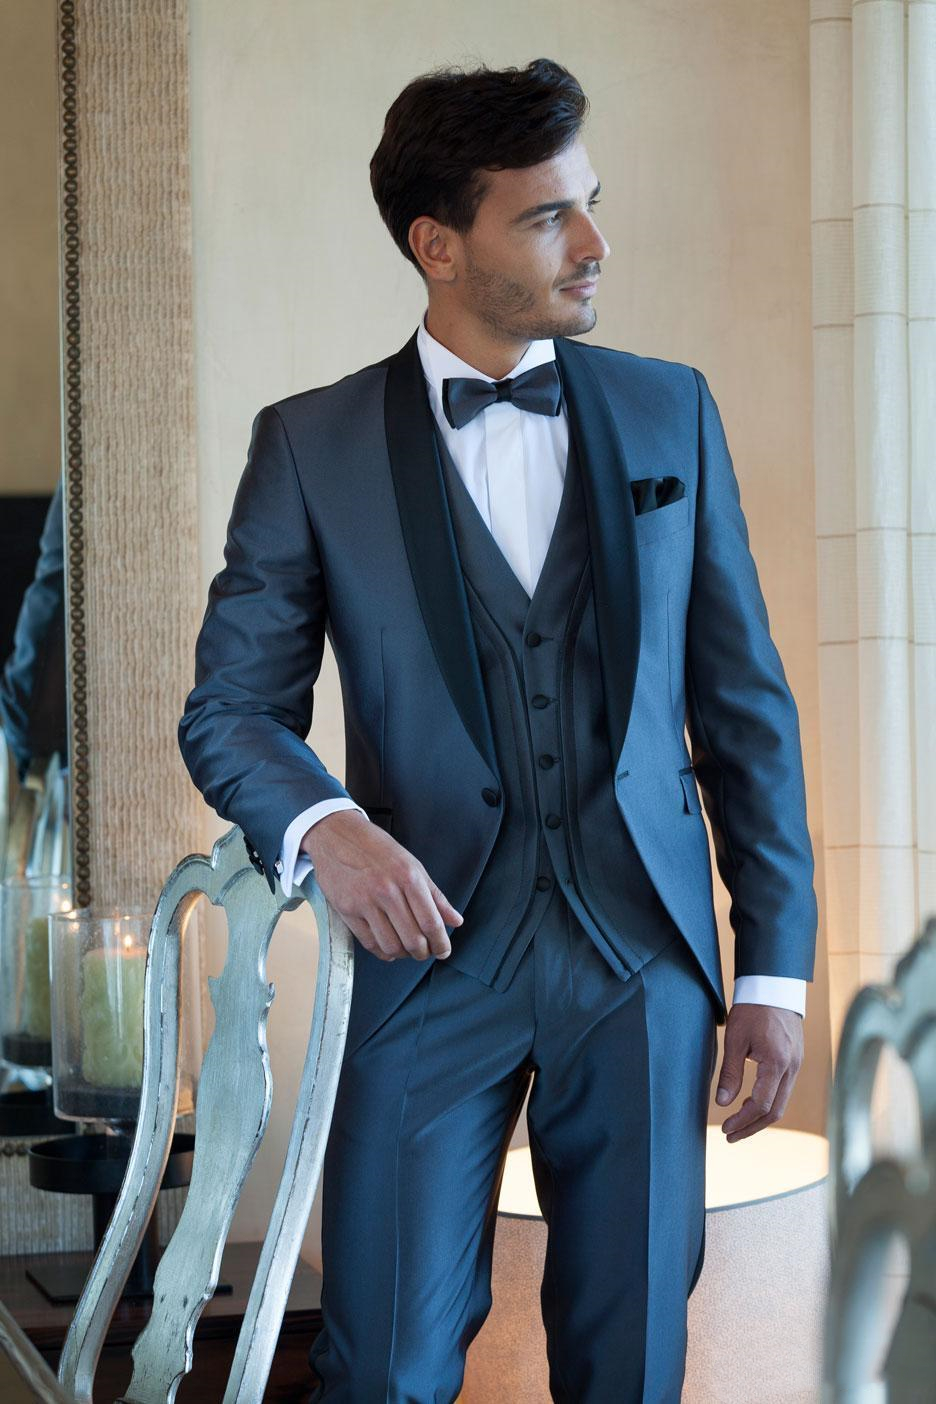 Morning-Party-Black-Tailcoat-Men-Suits-for-Wedding-Custom-Made-Groom-Tuxedos-Man-BLazers-3Piece-Terno